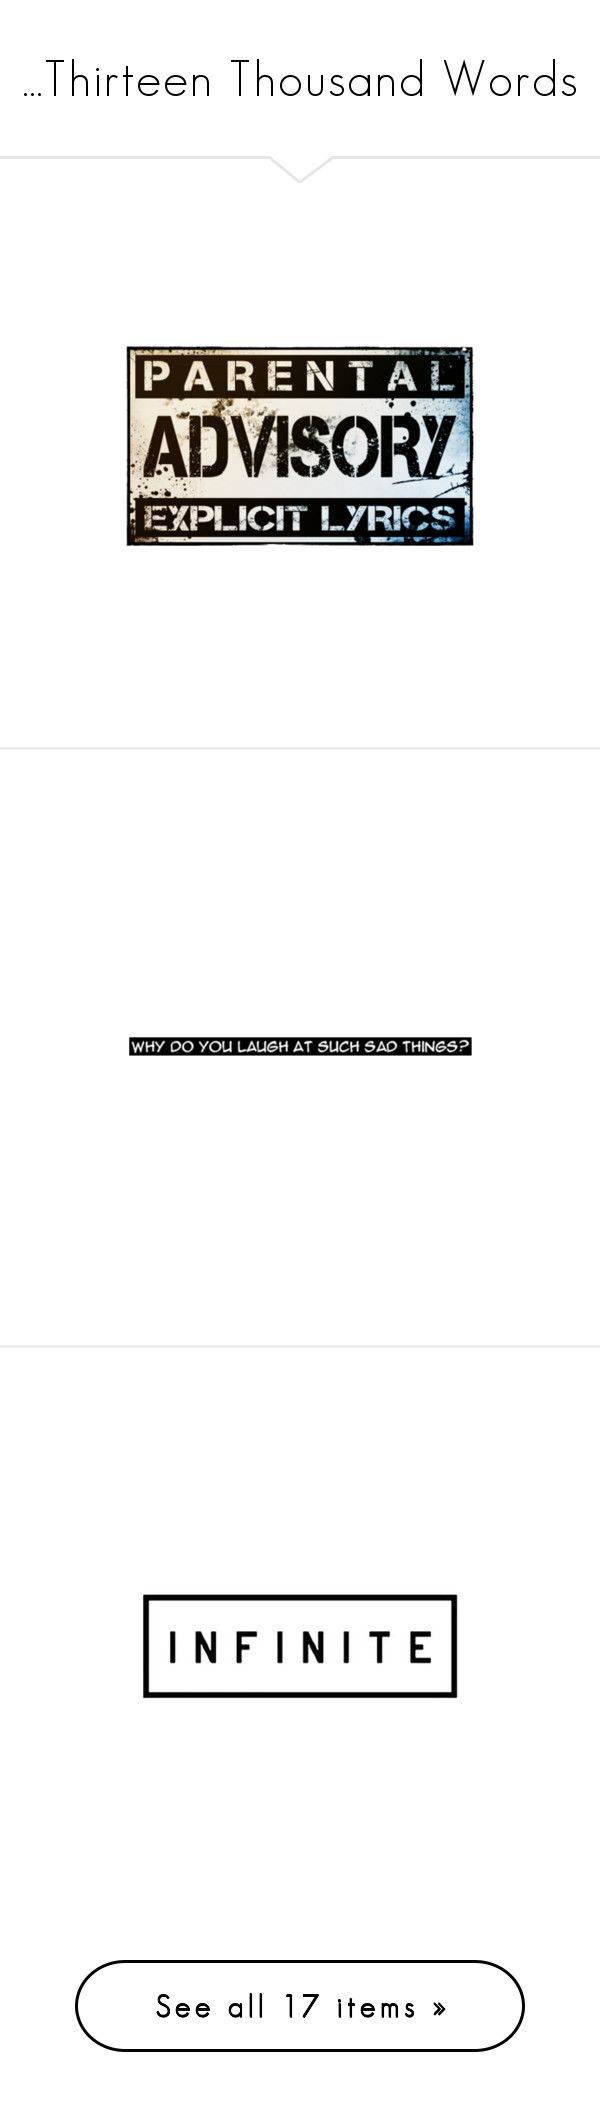 """""""...Thirteen Thousand Words"""" by morningstar1399 ❤ liked on Polyvore featuring quotes, fillers, words, text, pictures, phrase, saying, backgrounds, love and phrases"""